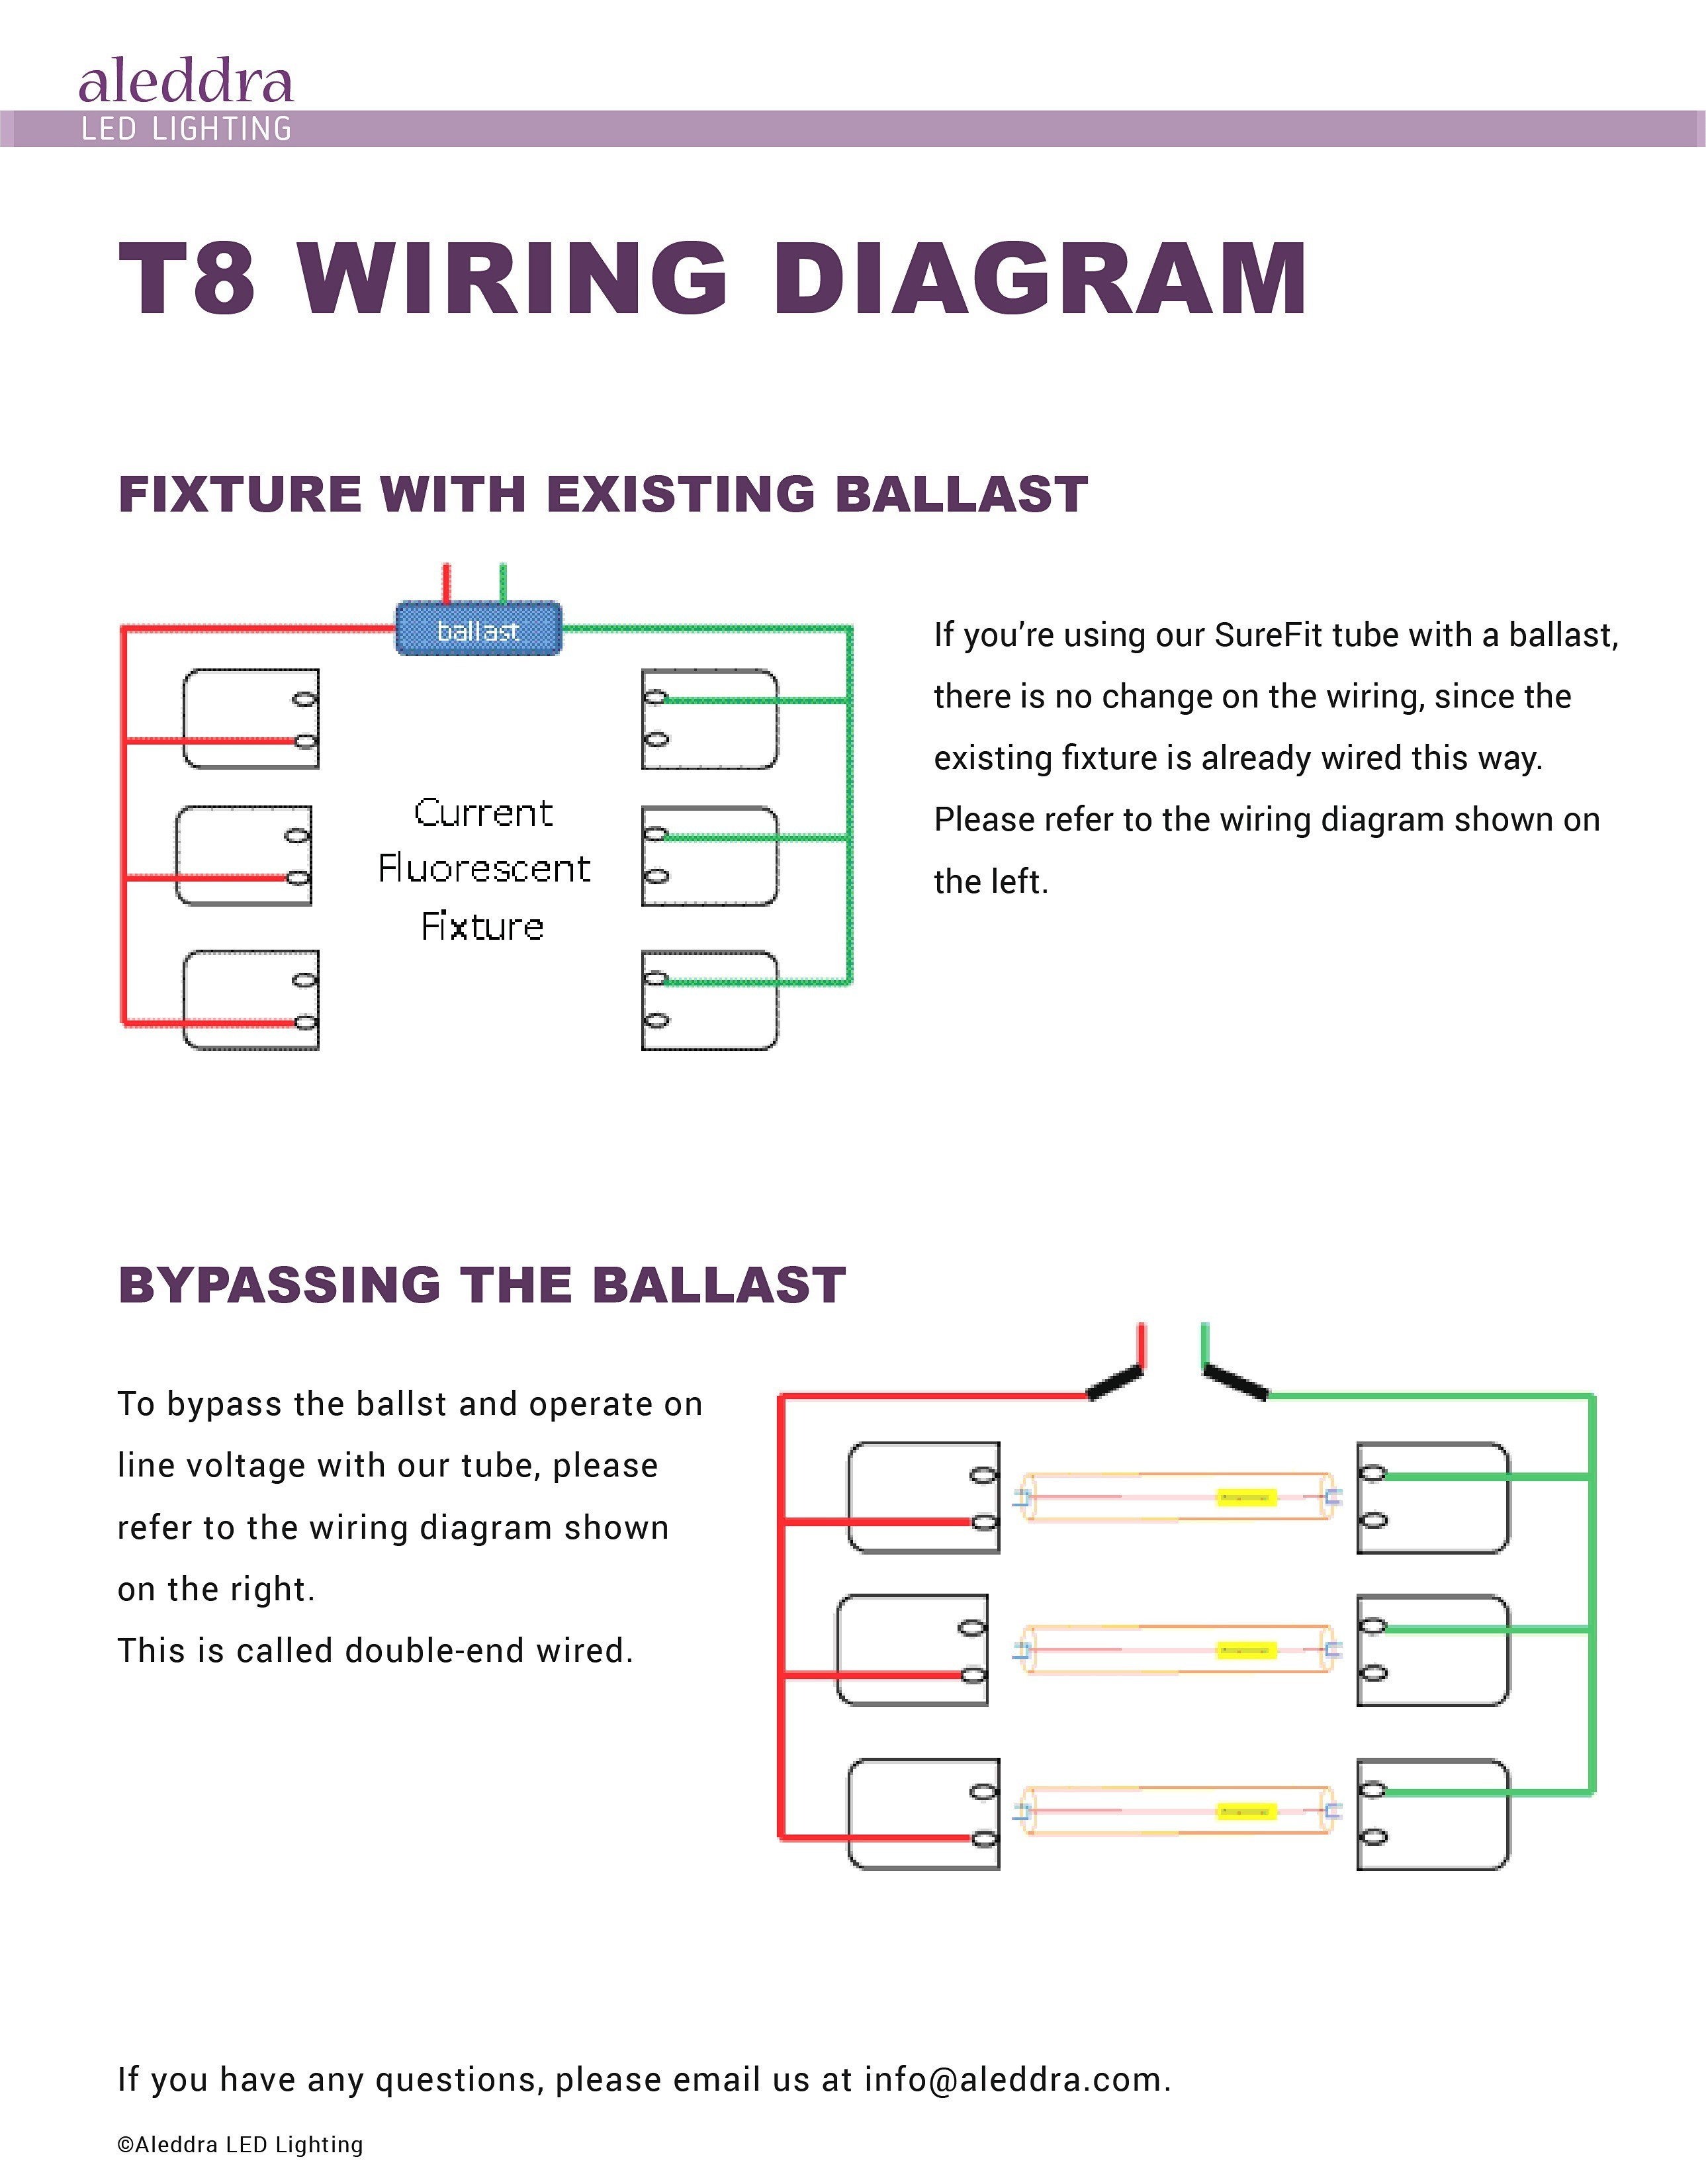 convert t12 to t8 wiring diagram unique wiring diagram image 4 bulb ballast wiring diagram t12 ballast wiring diagram elegant nice simkar emergency ballast rh thespartanchronicle